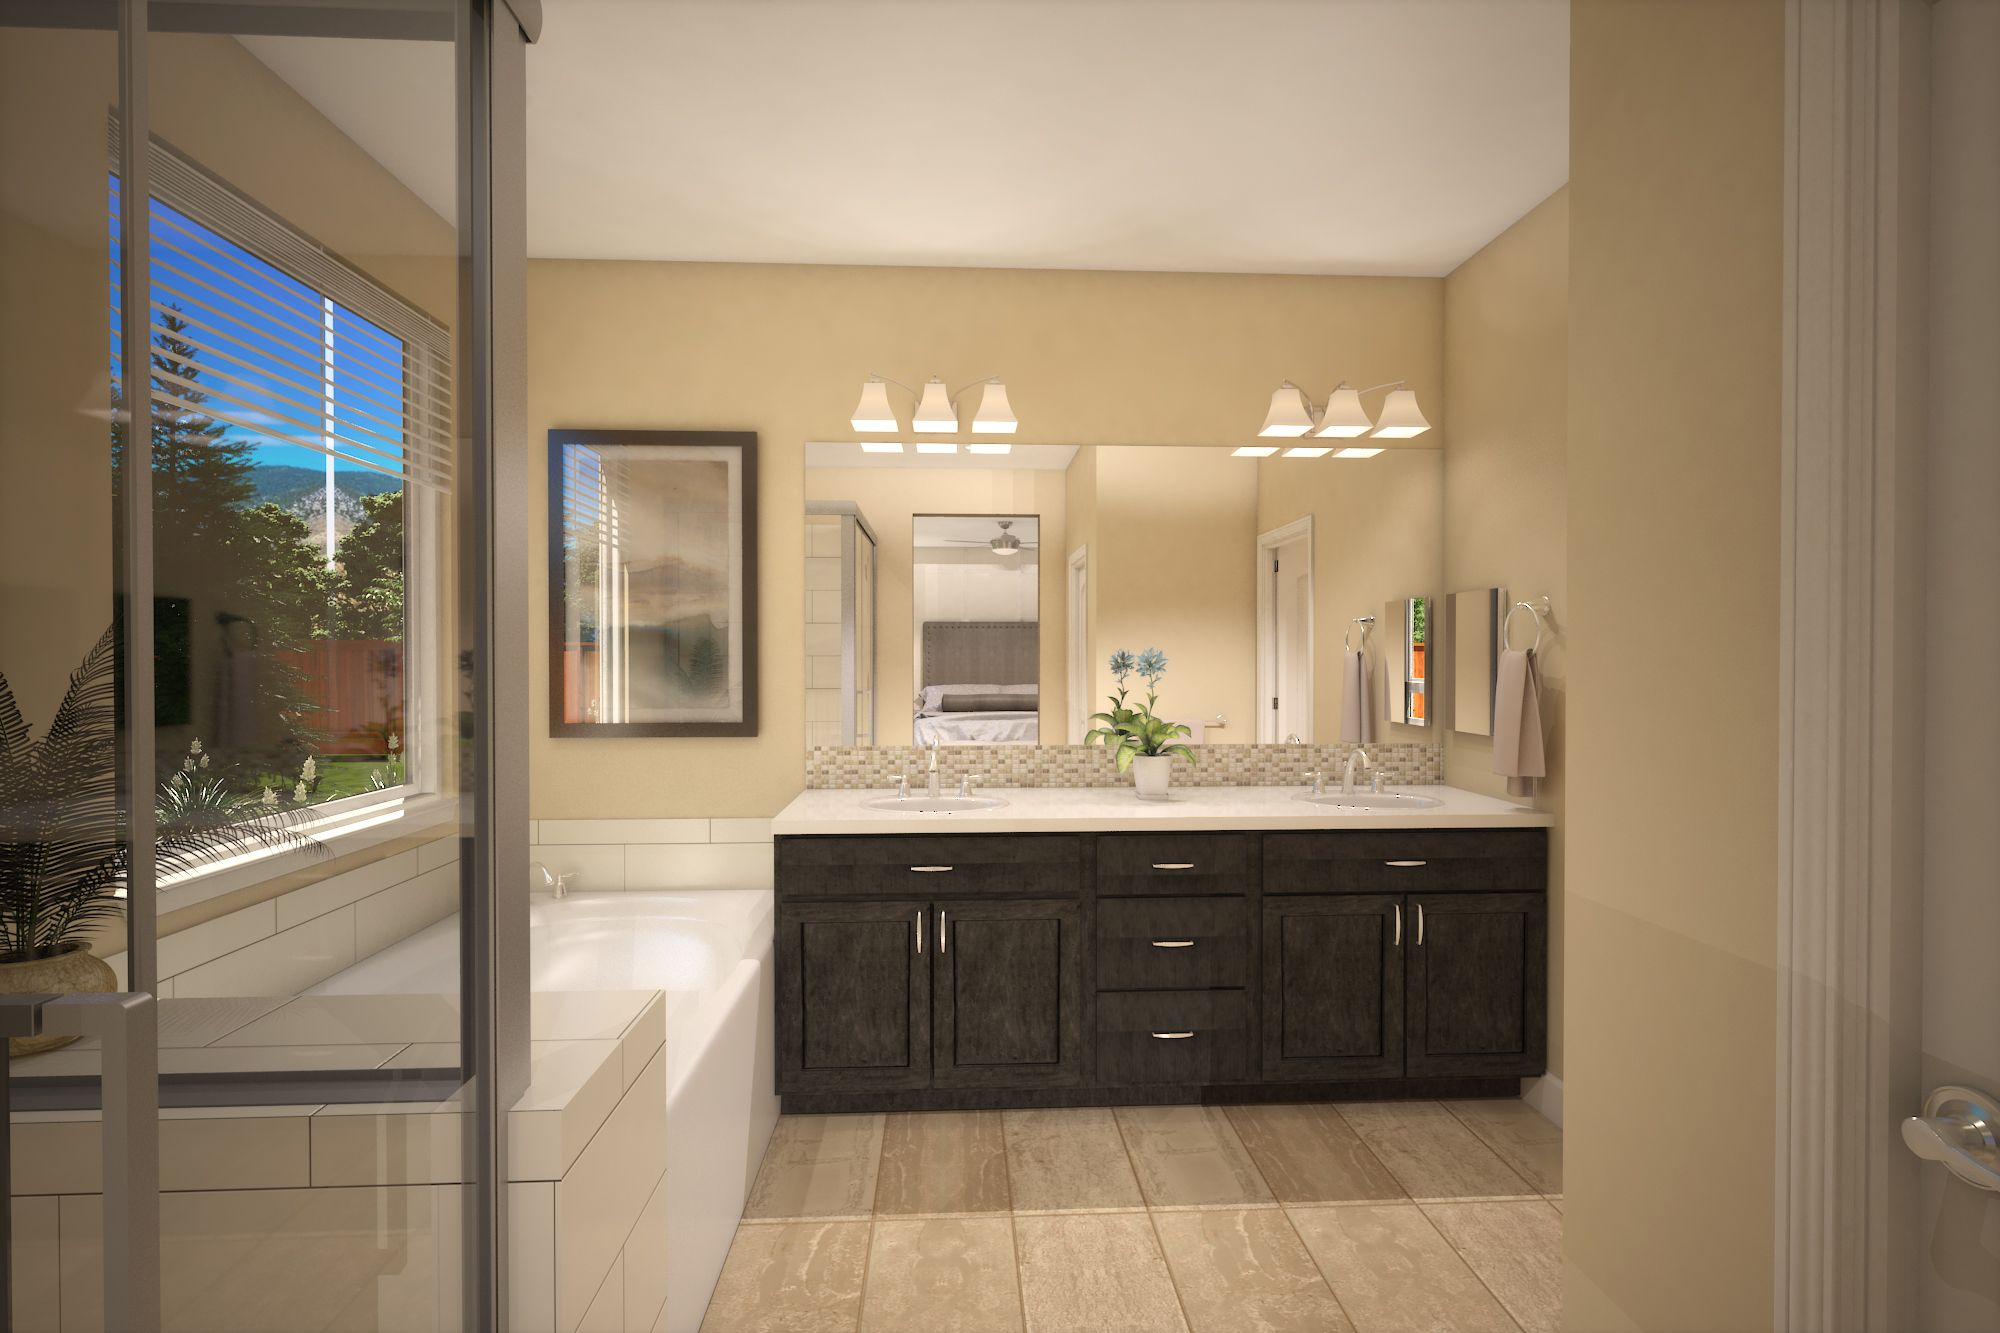 Bathroom featured in the Plan One By Silverado Homes in Reno, NV